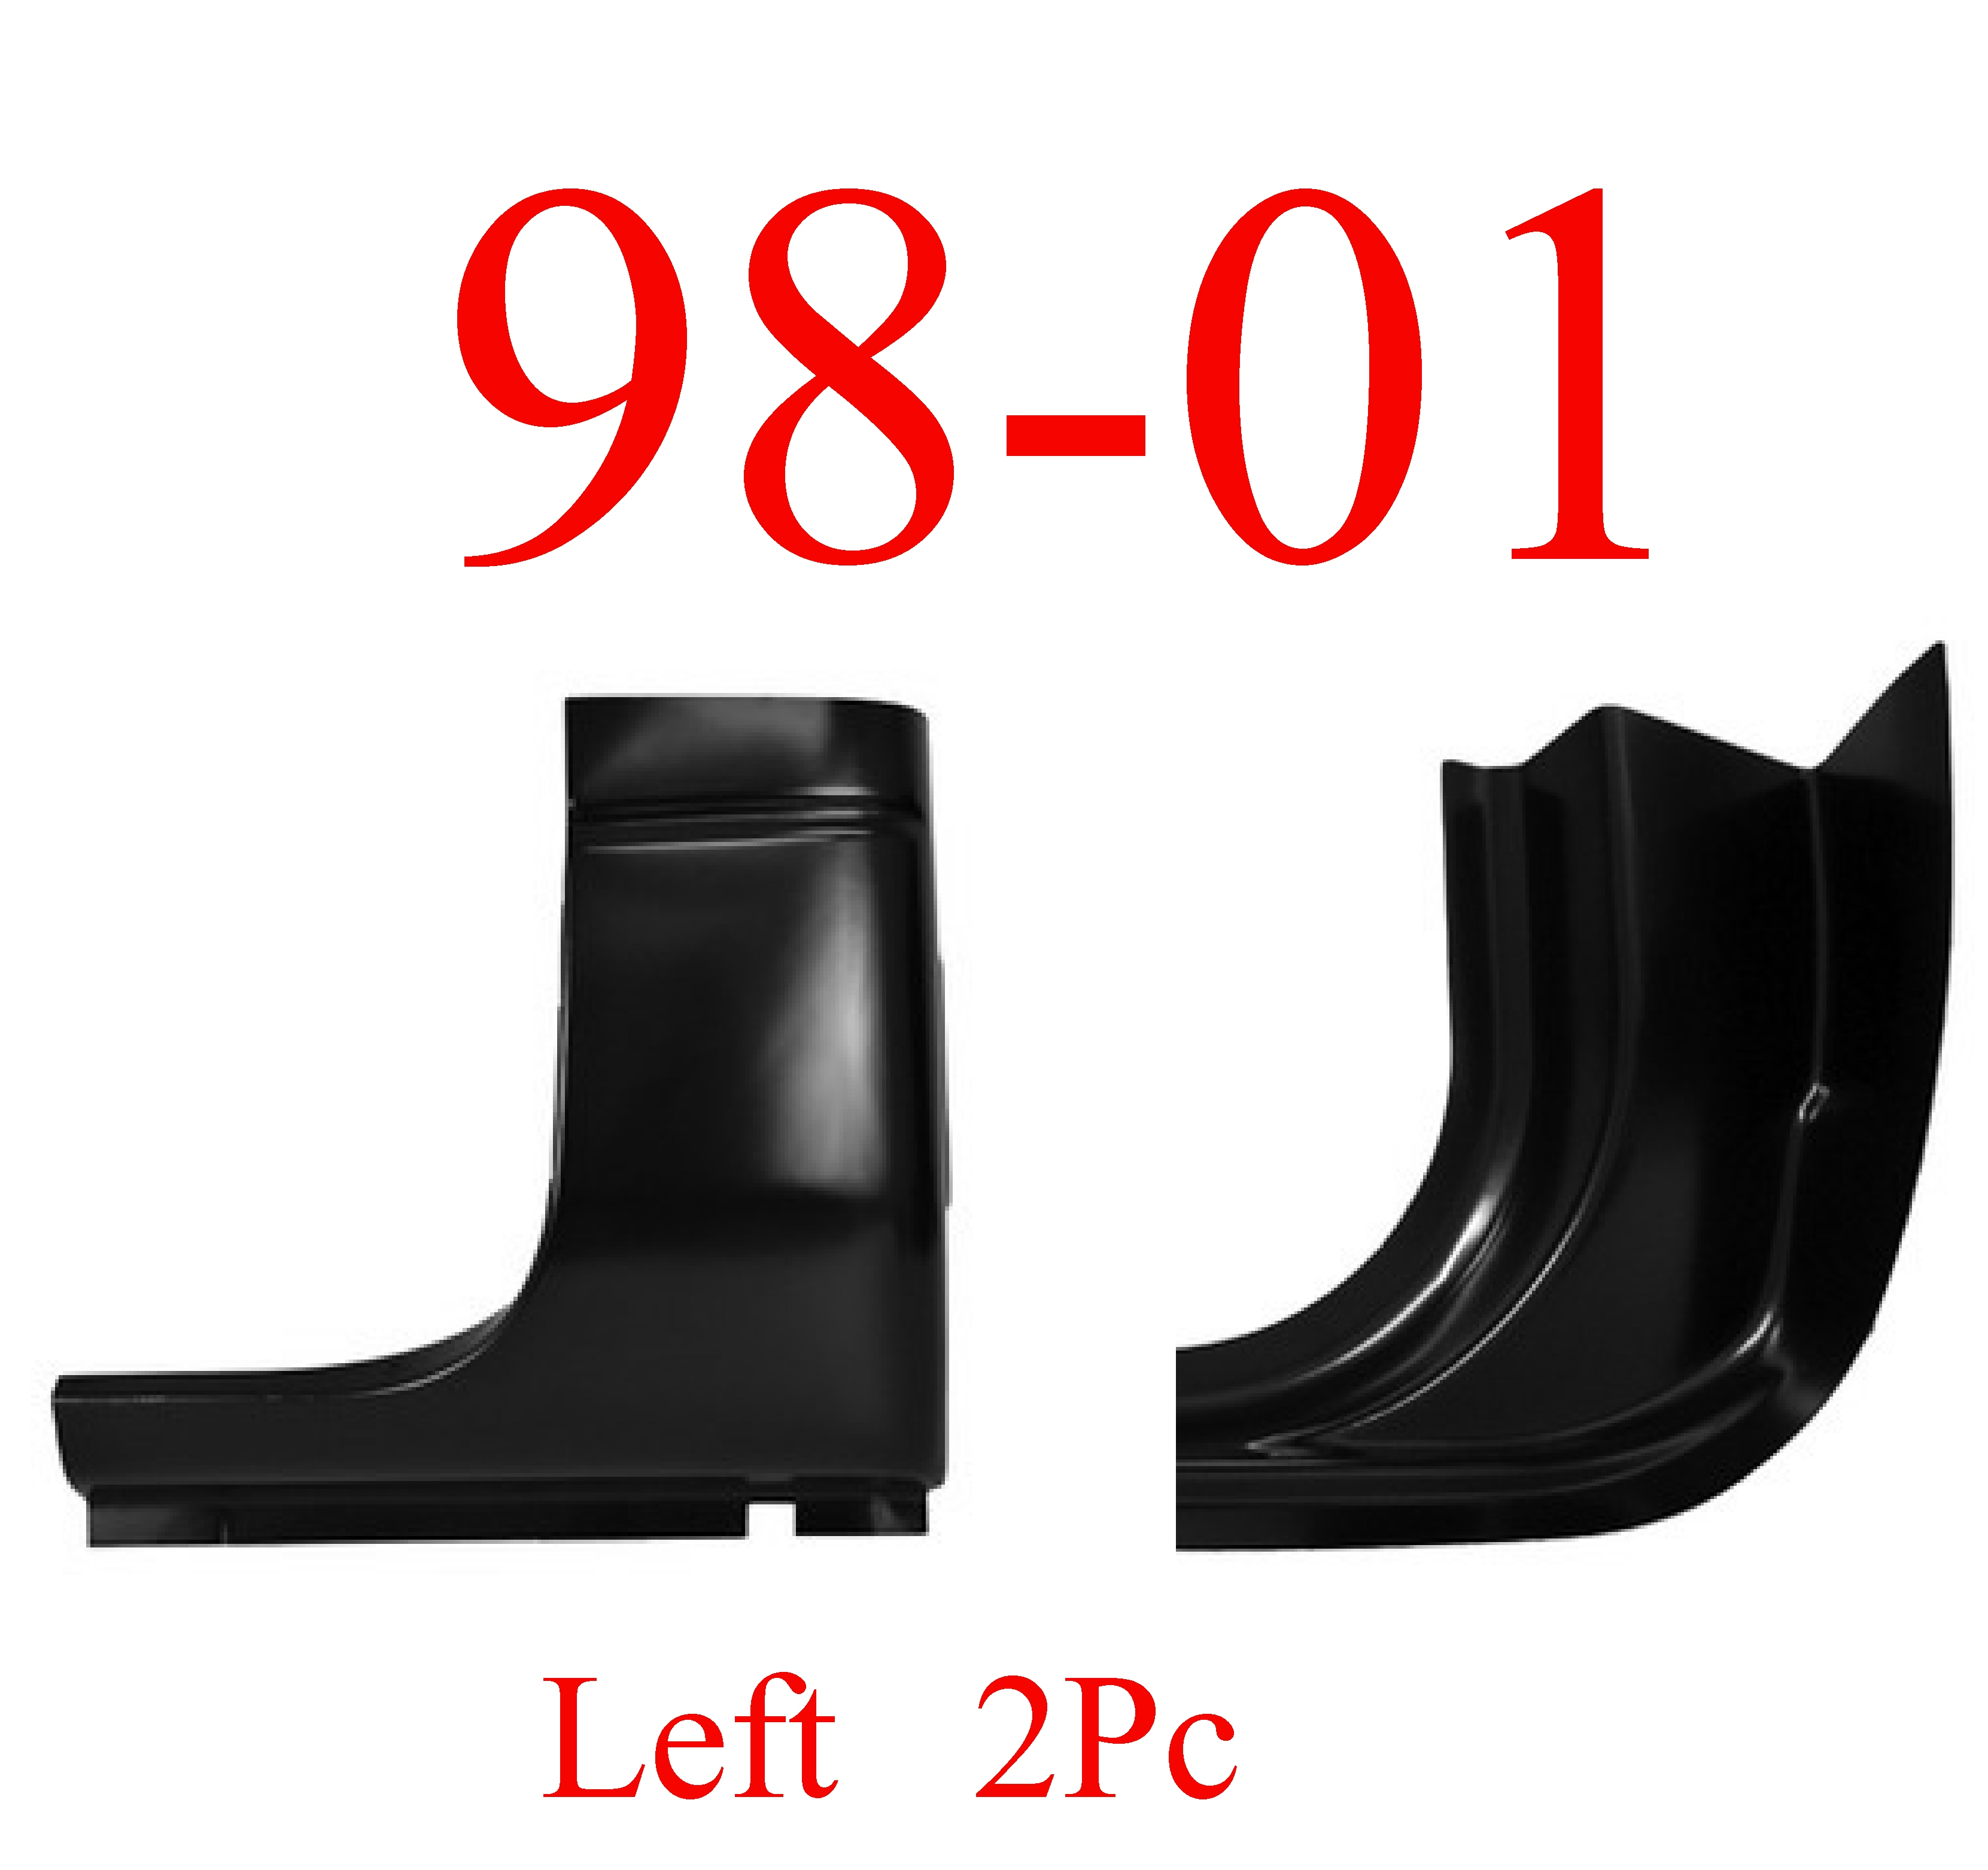 98-01 Dodge Left 2Pc Quad Cab Corner & Inner